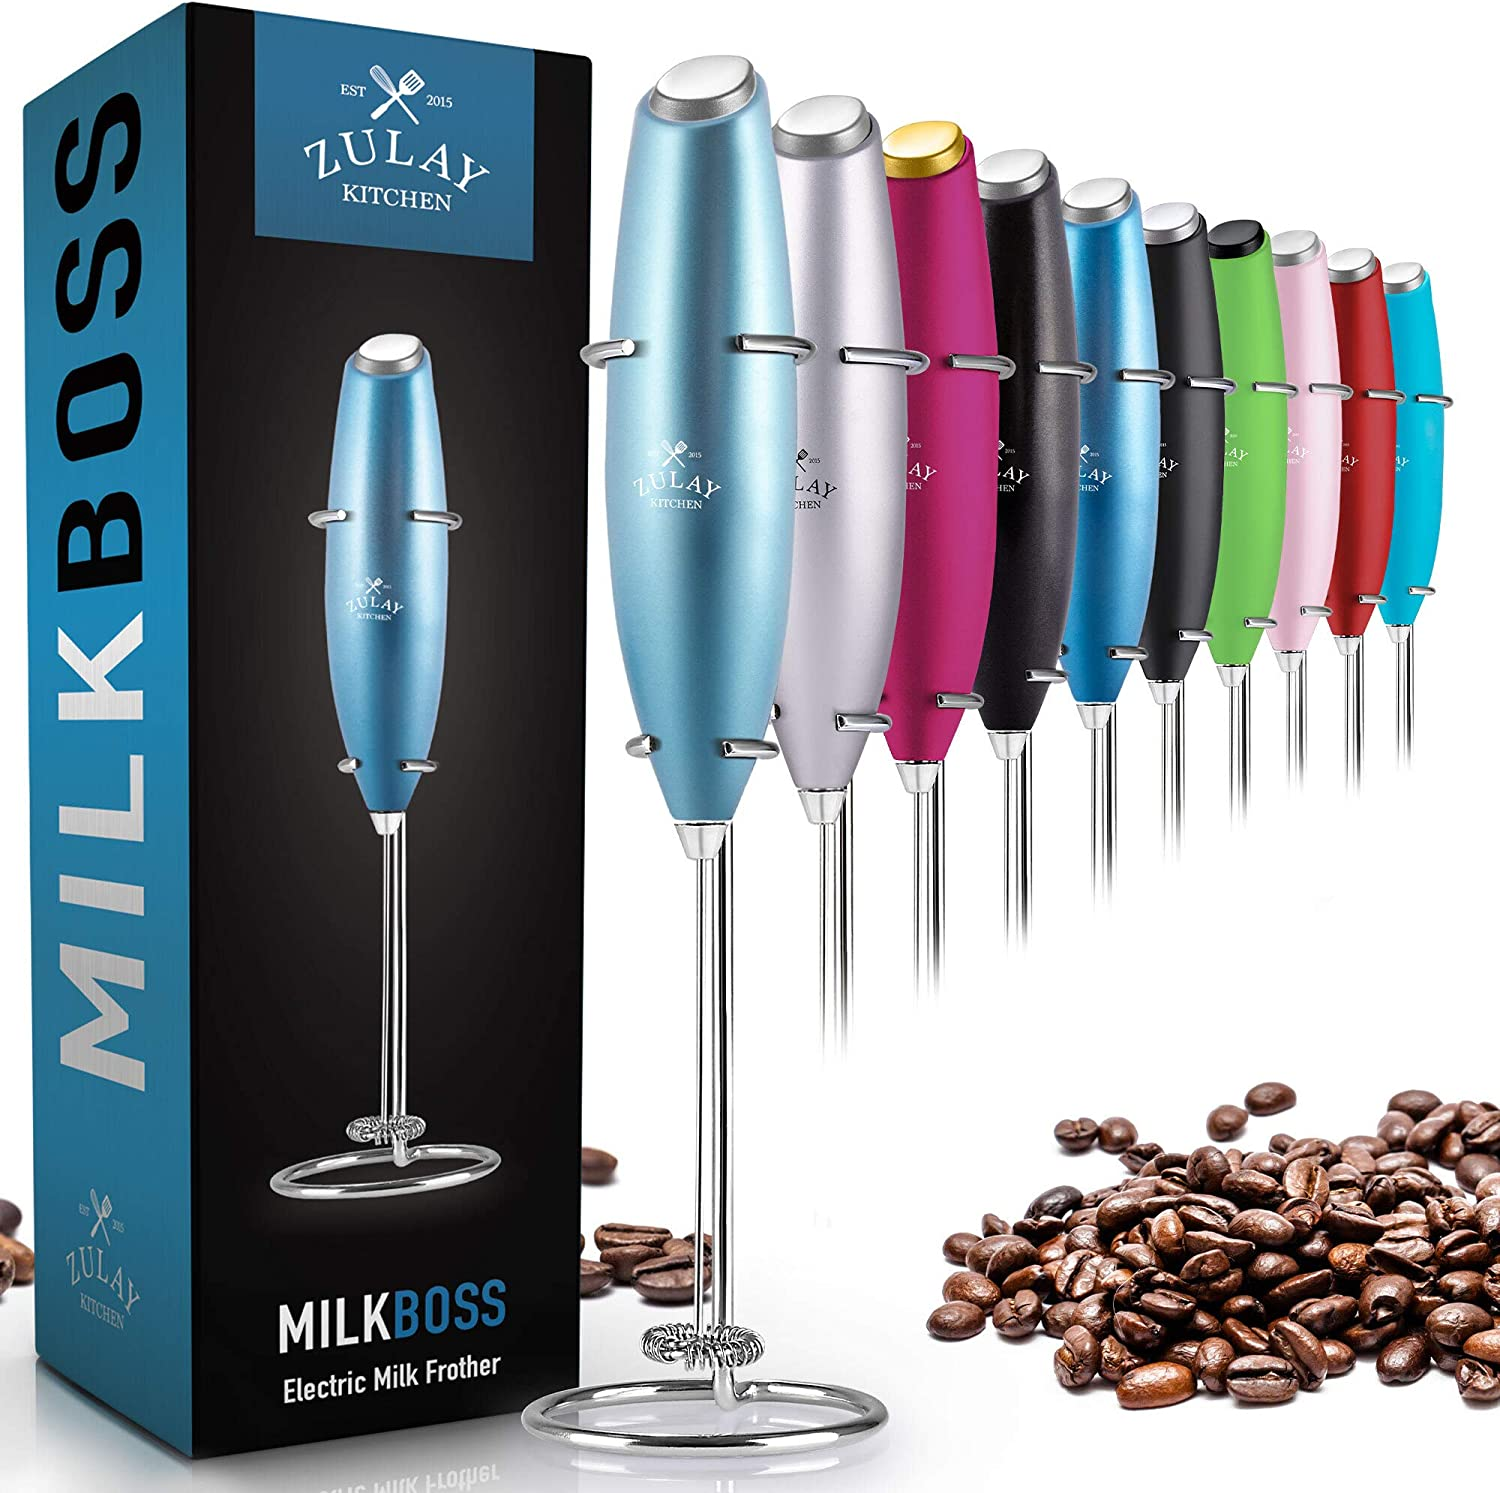 Zulay Original Milk Frother Handheld Foam Maker for Lattes - Whisk Drink Mixer for Coffee, Mini Foamer for Cappuccino, Frappe, Matcha, Hot Chocolate by Milk Boss (Metallic Ice Blue)